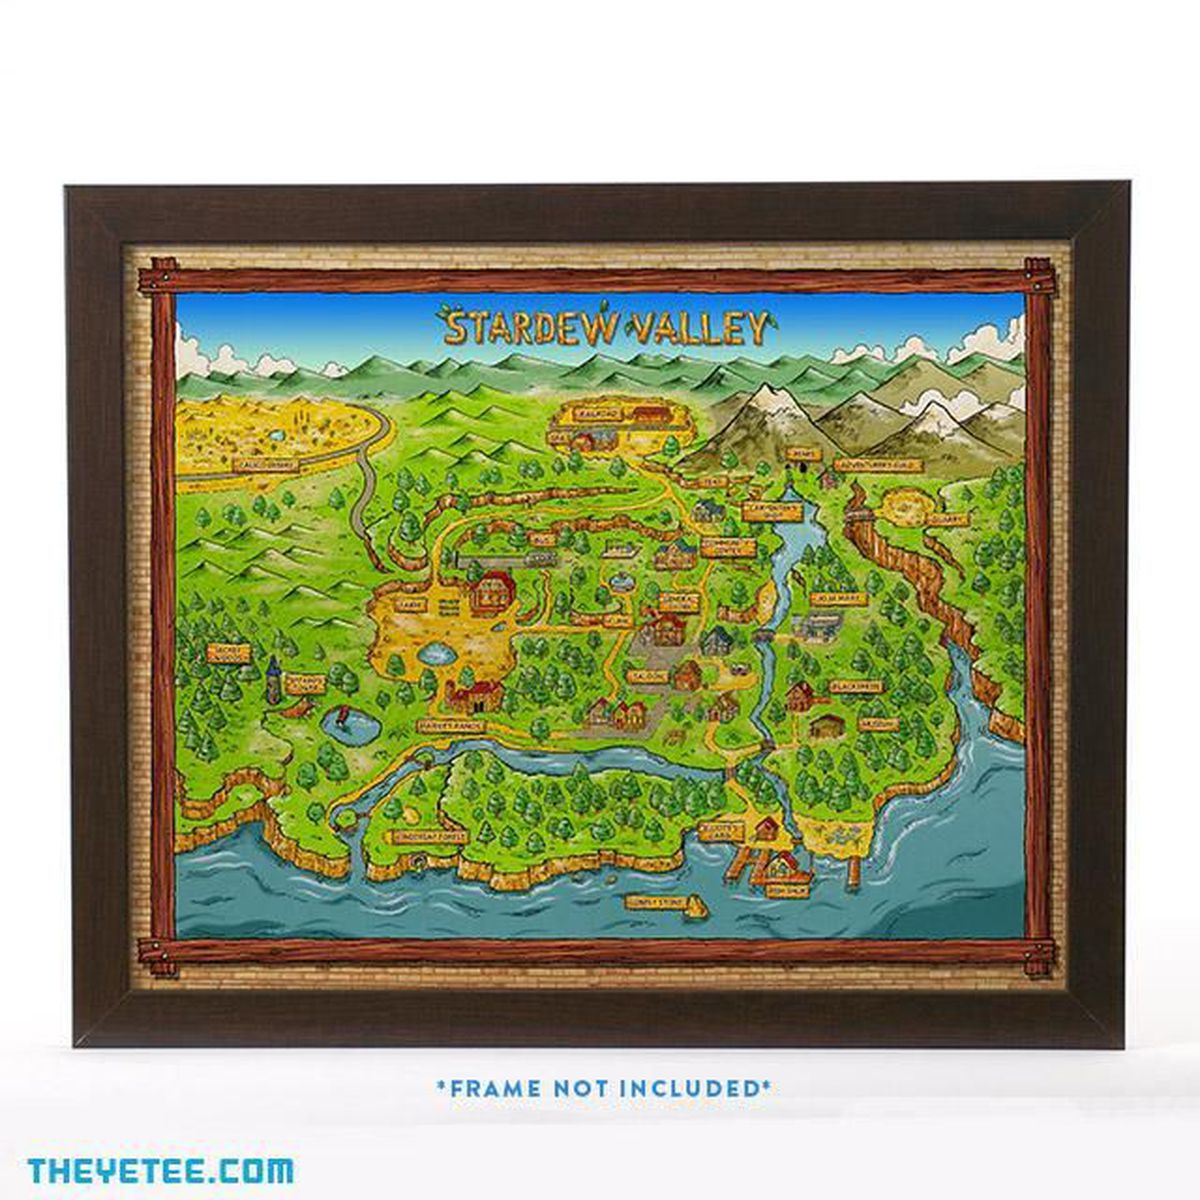 Polygons Holiday Gift Guide Best Toys Games Books And More To Picture Frame Geek Home Decor Yellow Circuit Board Photo Stardew Valley Map 25